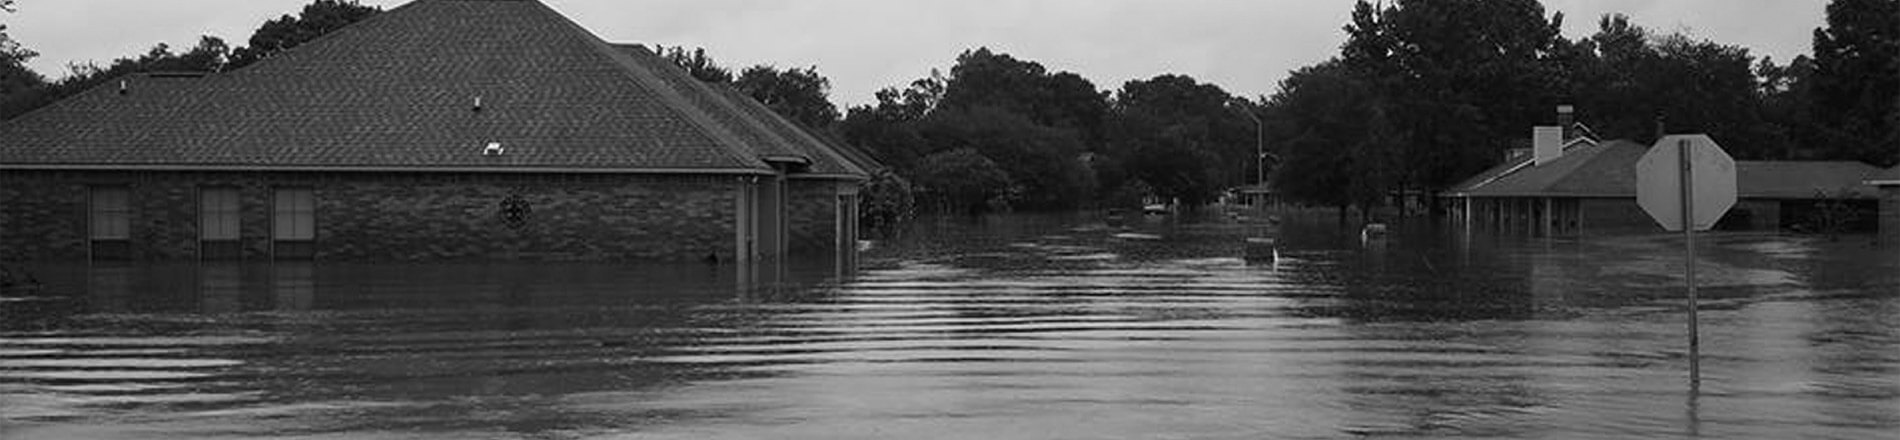 Louisiana Flood Relief